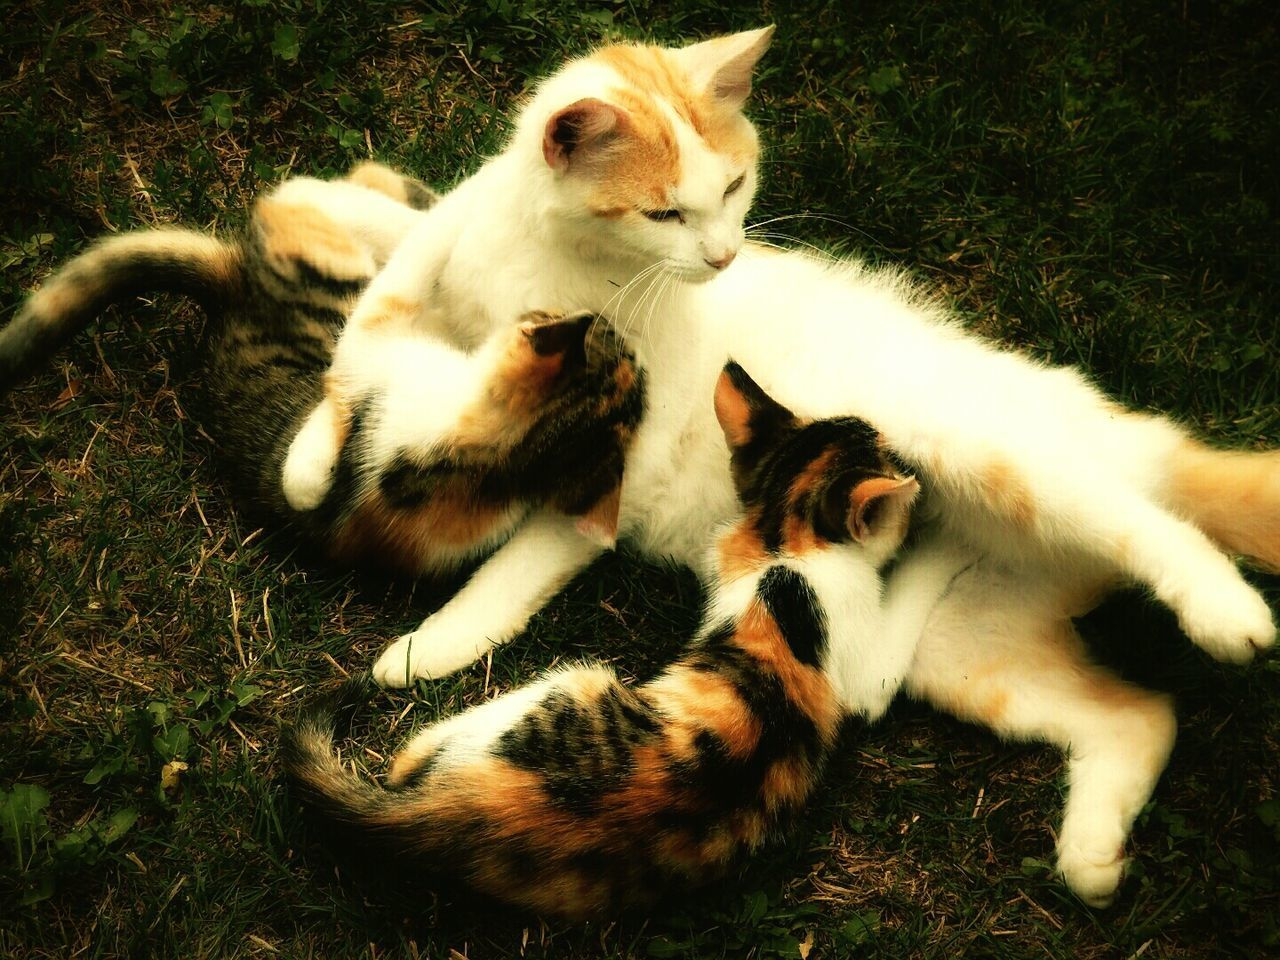 Animal Themes Cats Of EyeEm Babycats Domestic Cat Domestic Animals Togetherness Motherlove